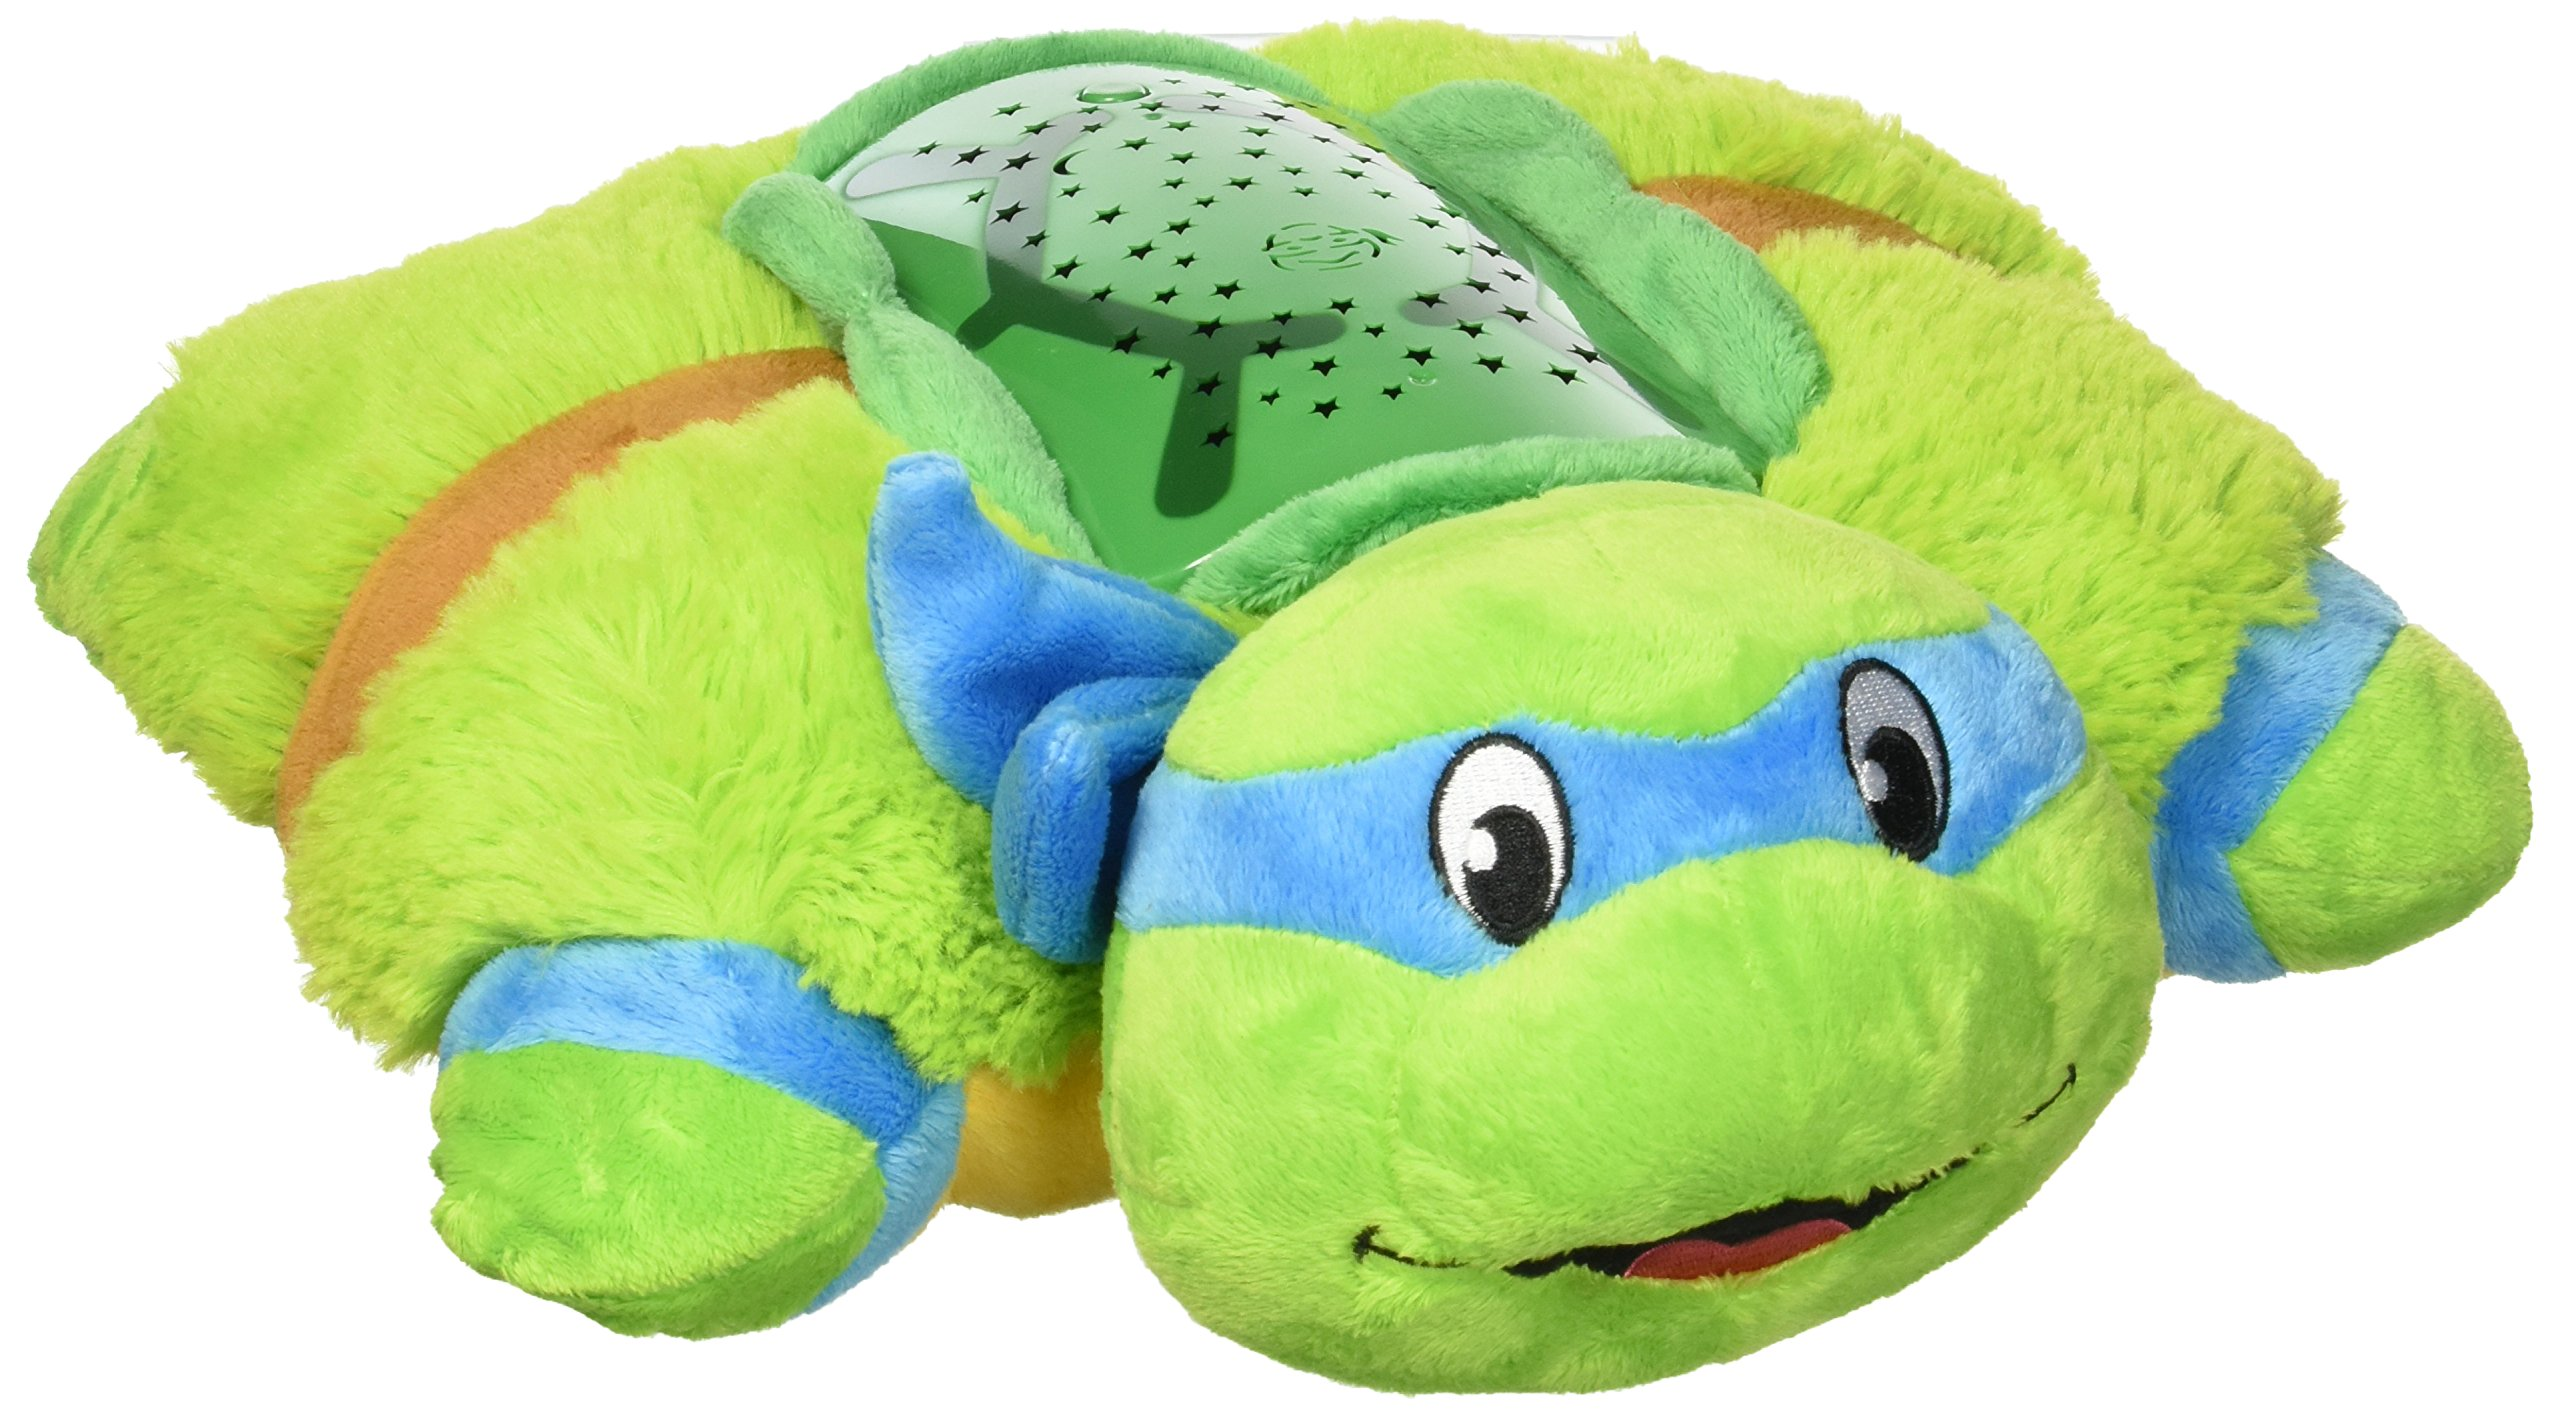 Pillow Pets Dream Lite TNT - Leonardo by Pillow Pets (Image #3)